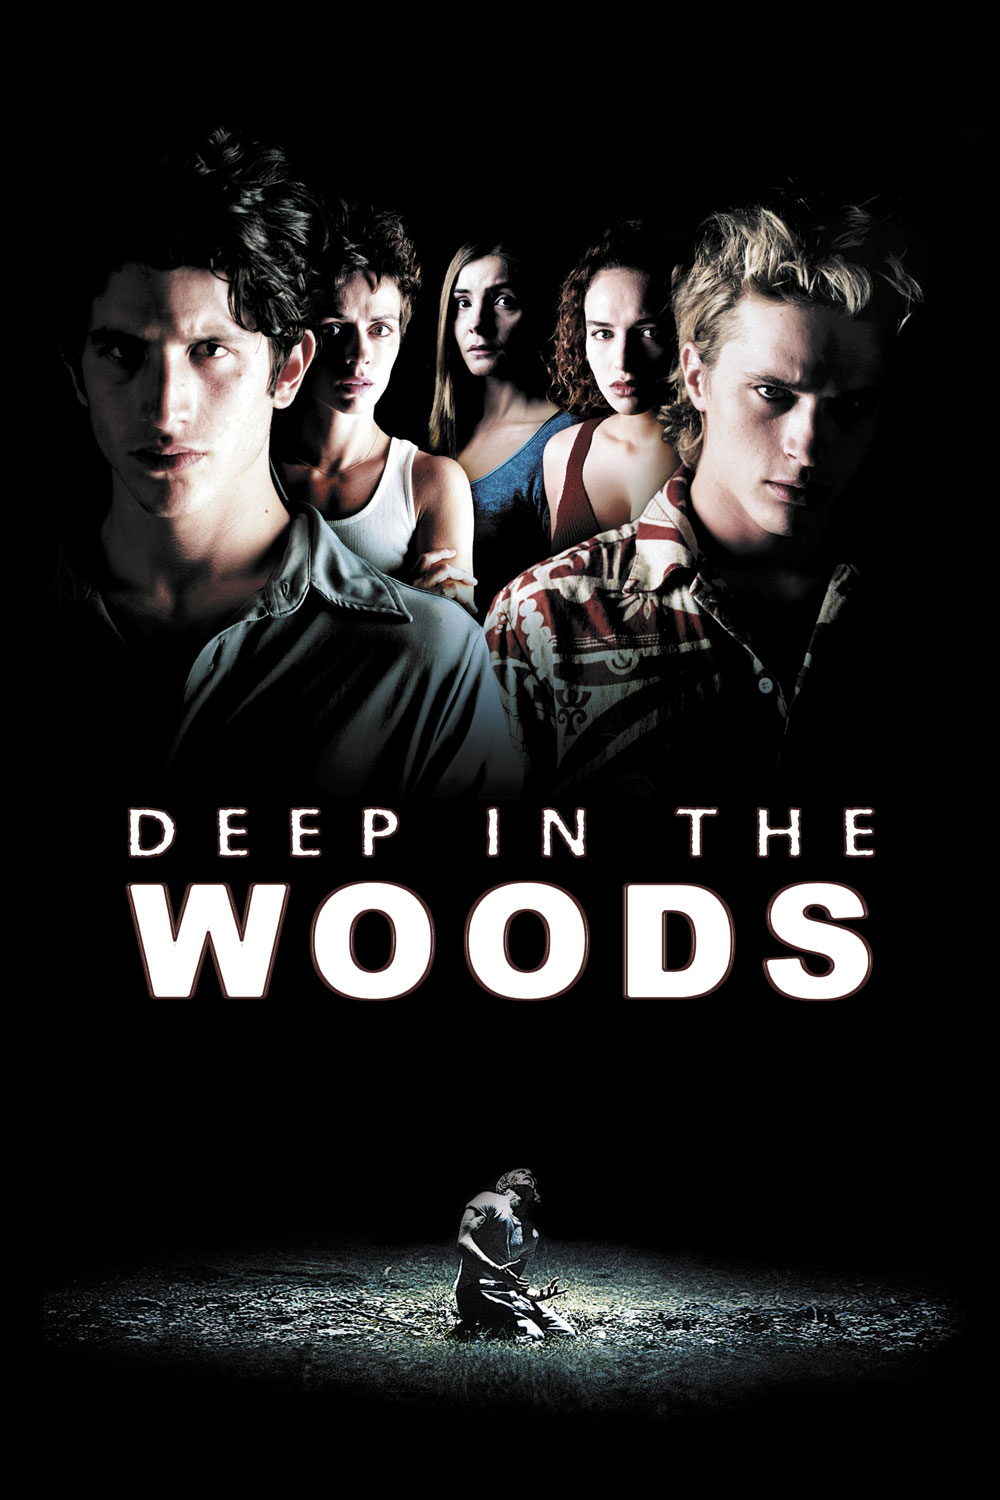 Театр смерти / Deep in the woods (2000)